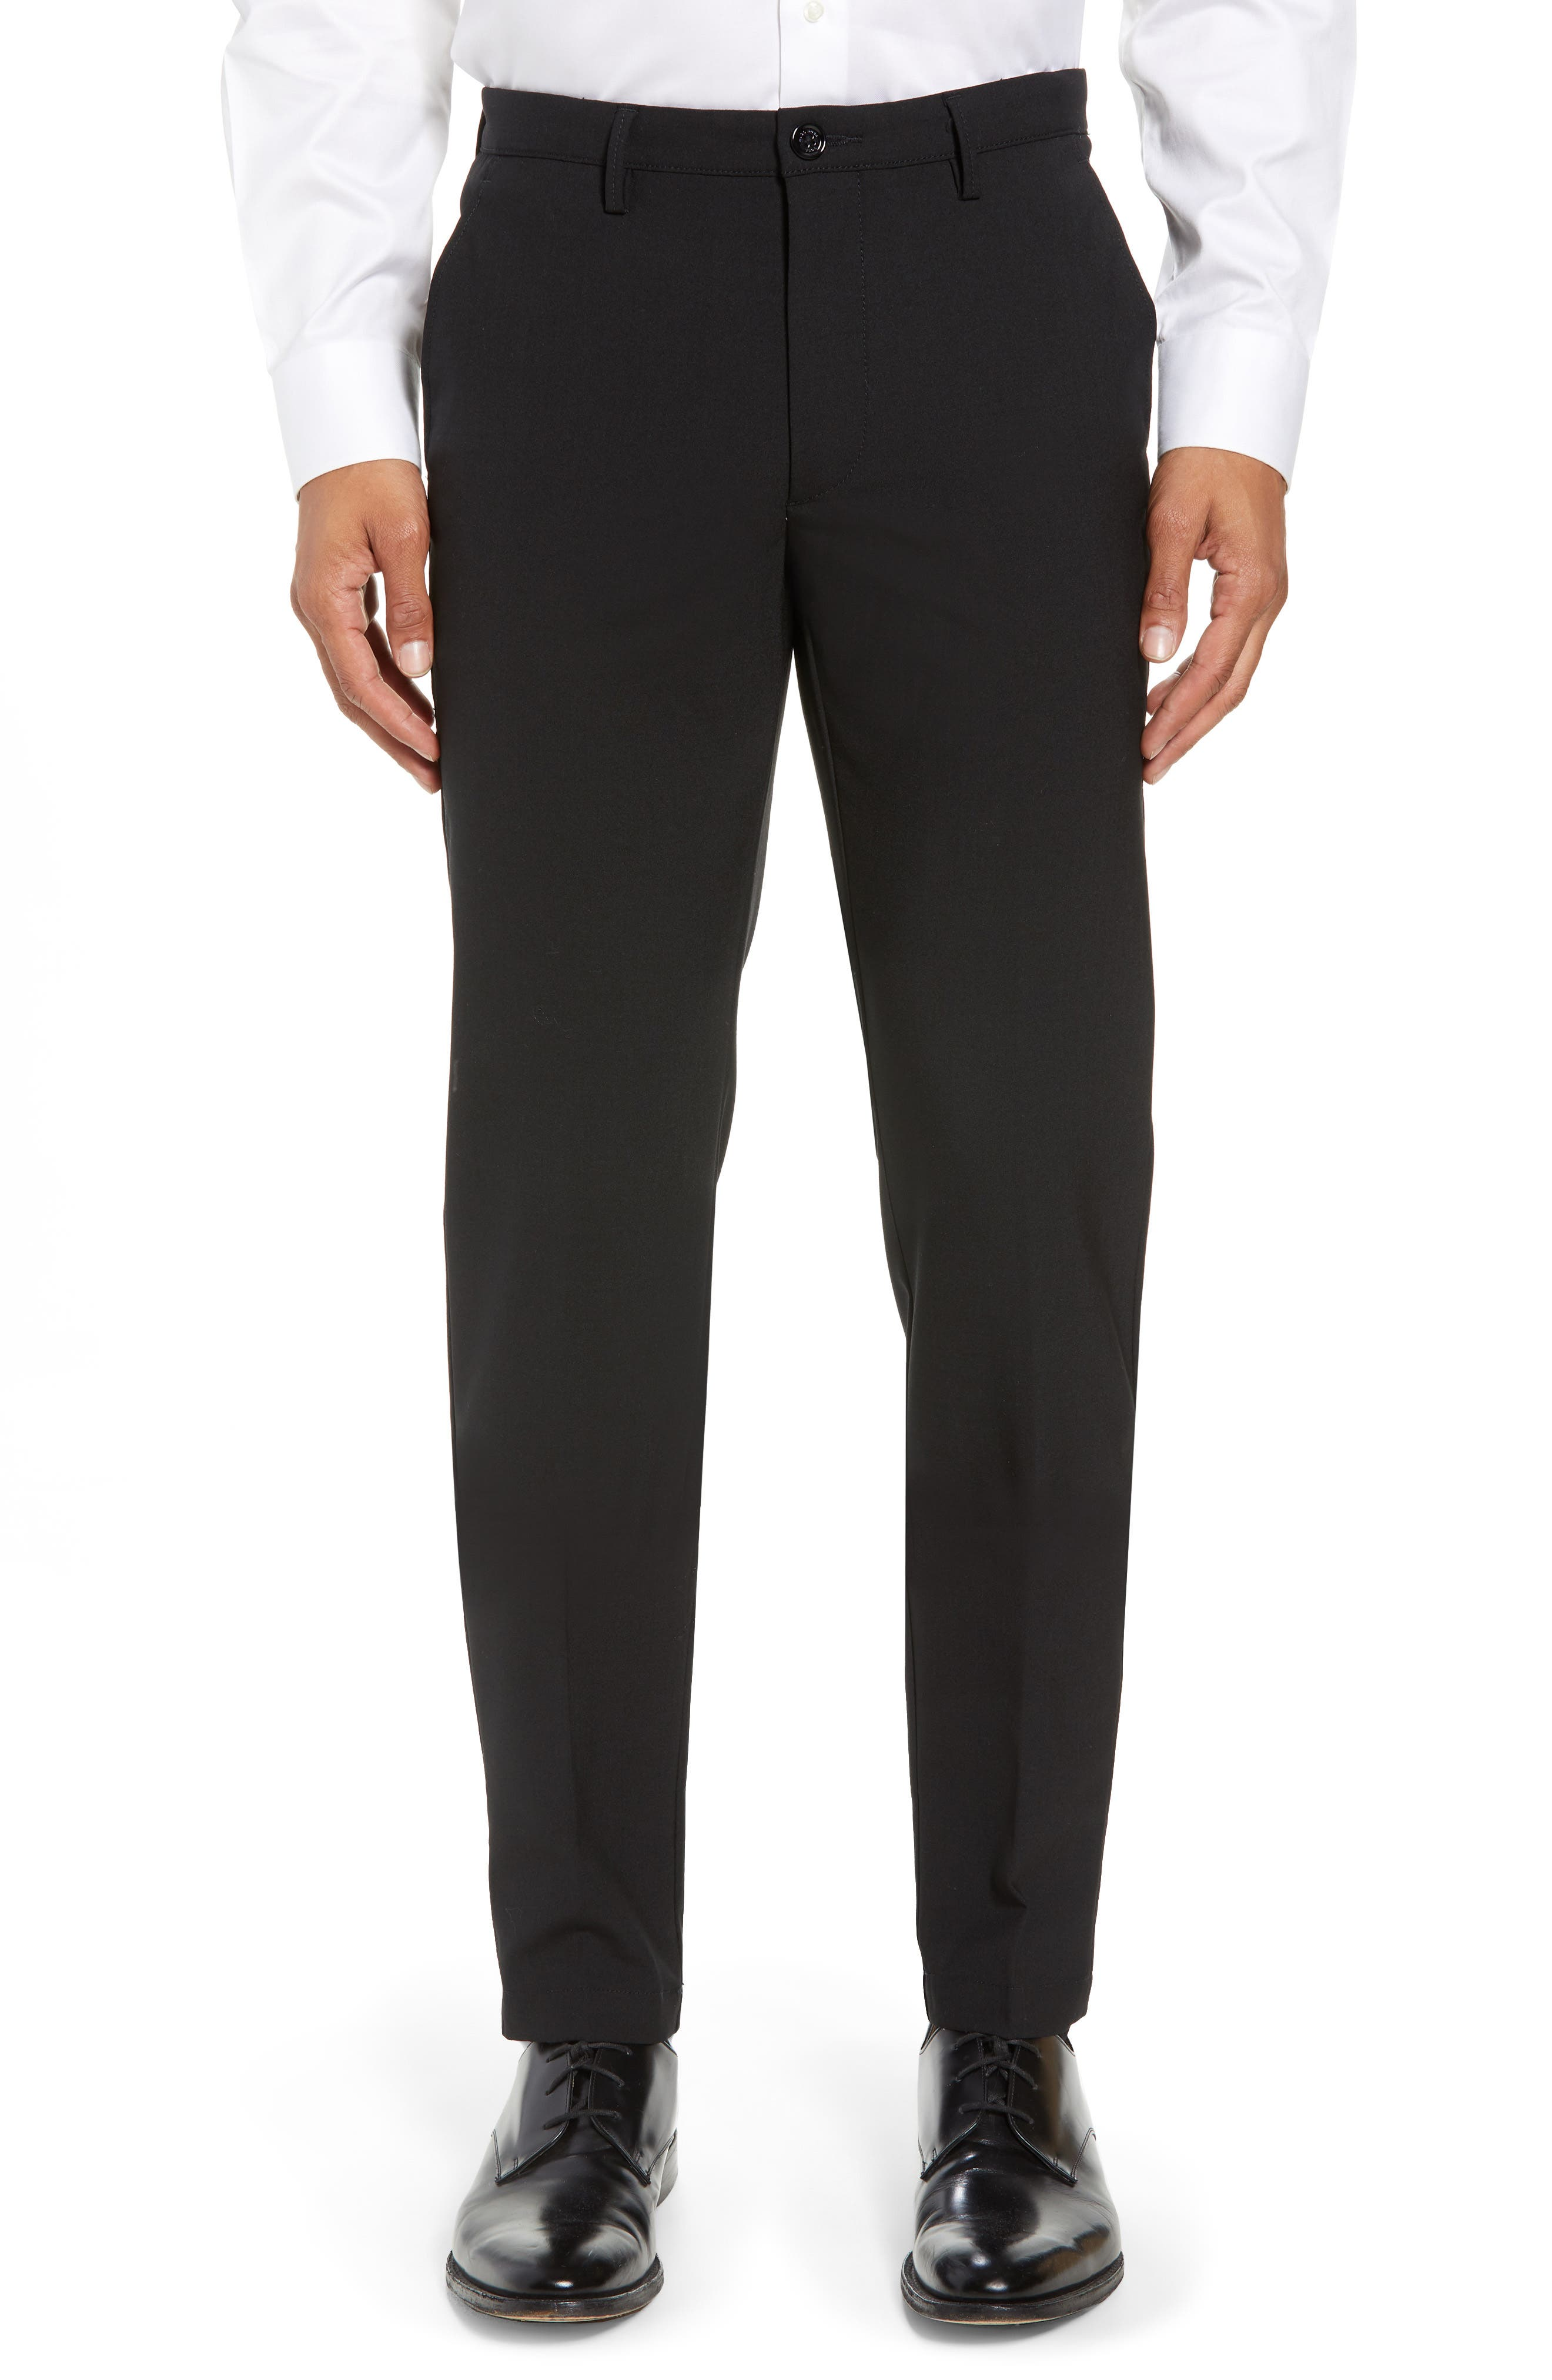 Kaito Slim Fit Trousers,                         Main,                         color, Black